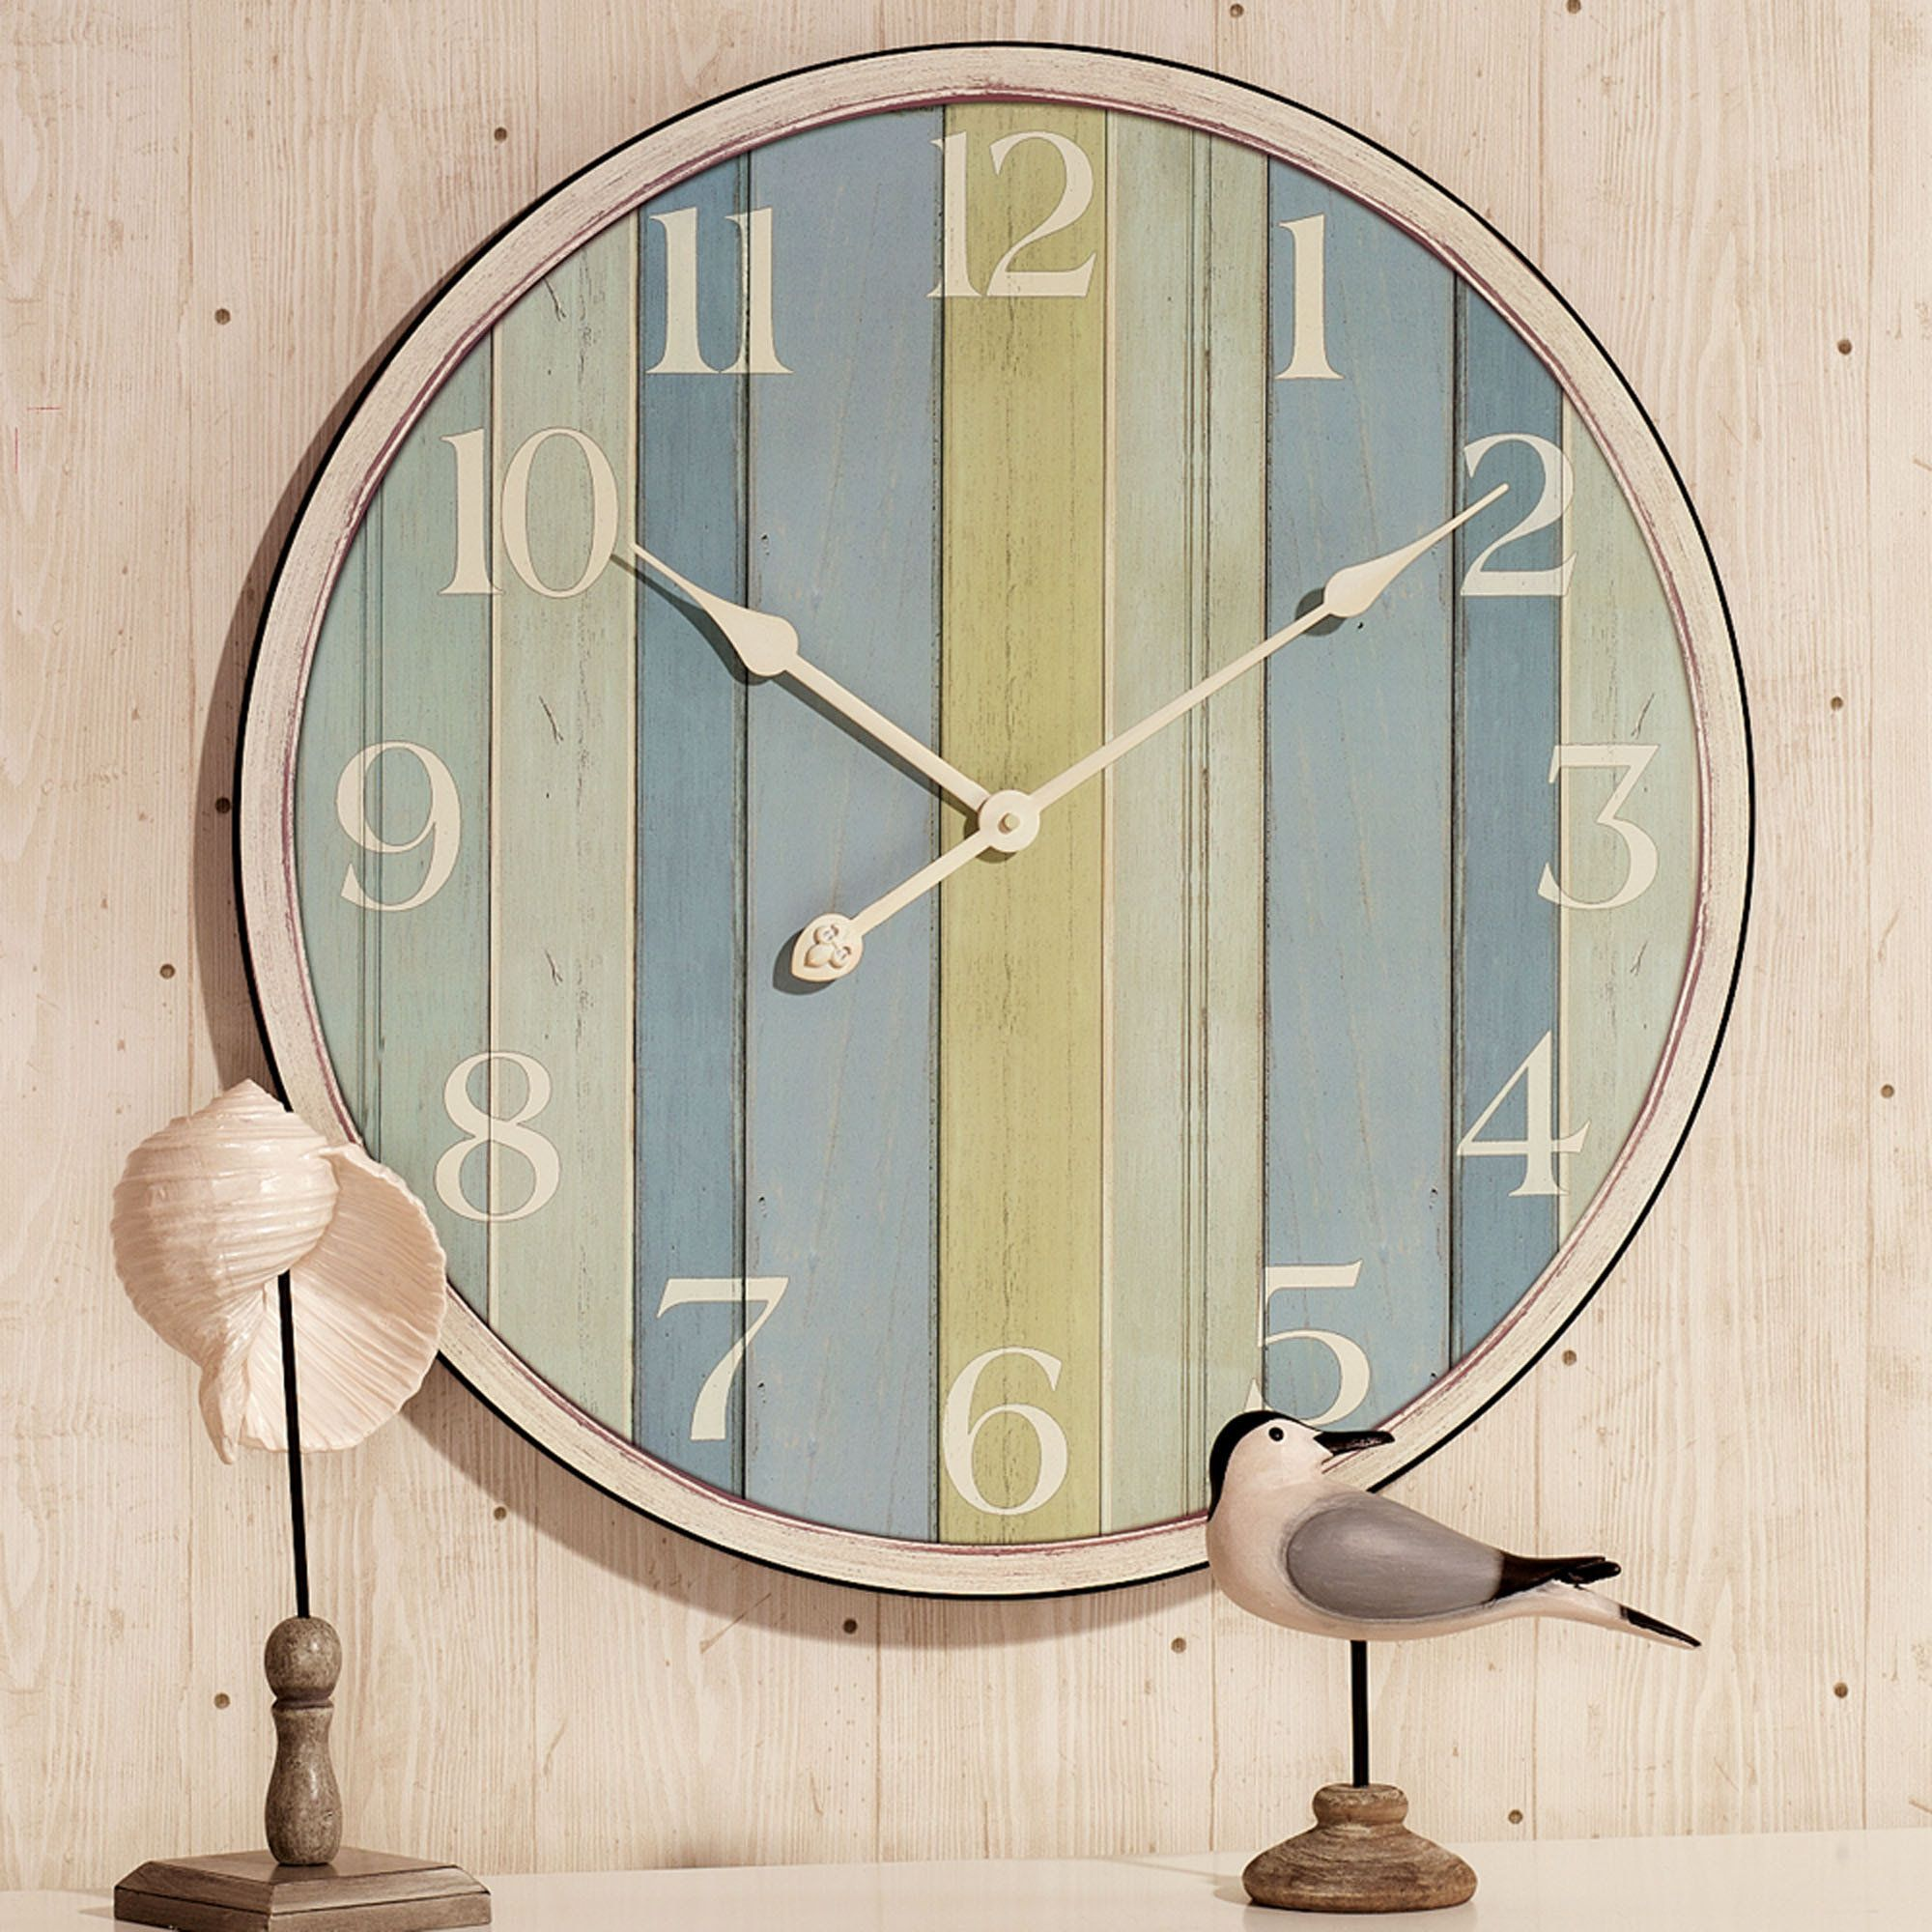 Nautical Striped Wooden Wall Clock Wall Clocks Clocks And Walls